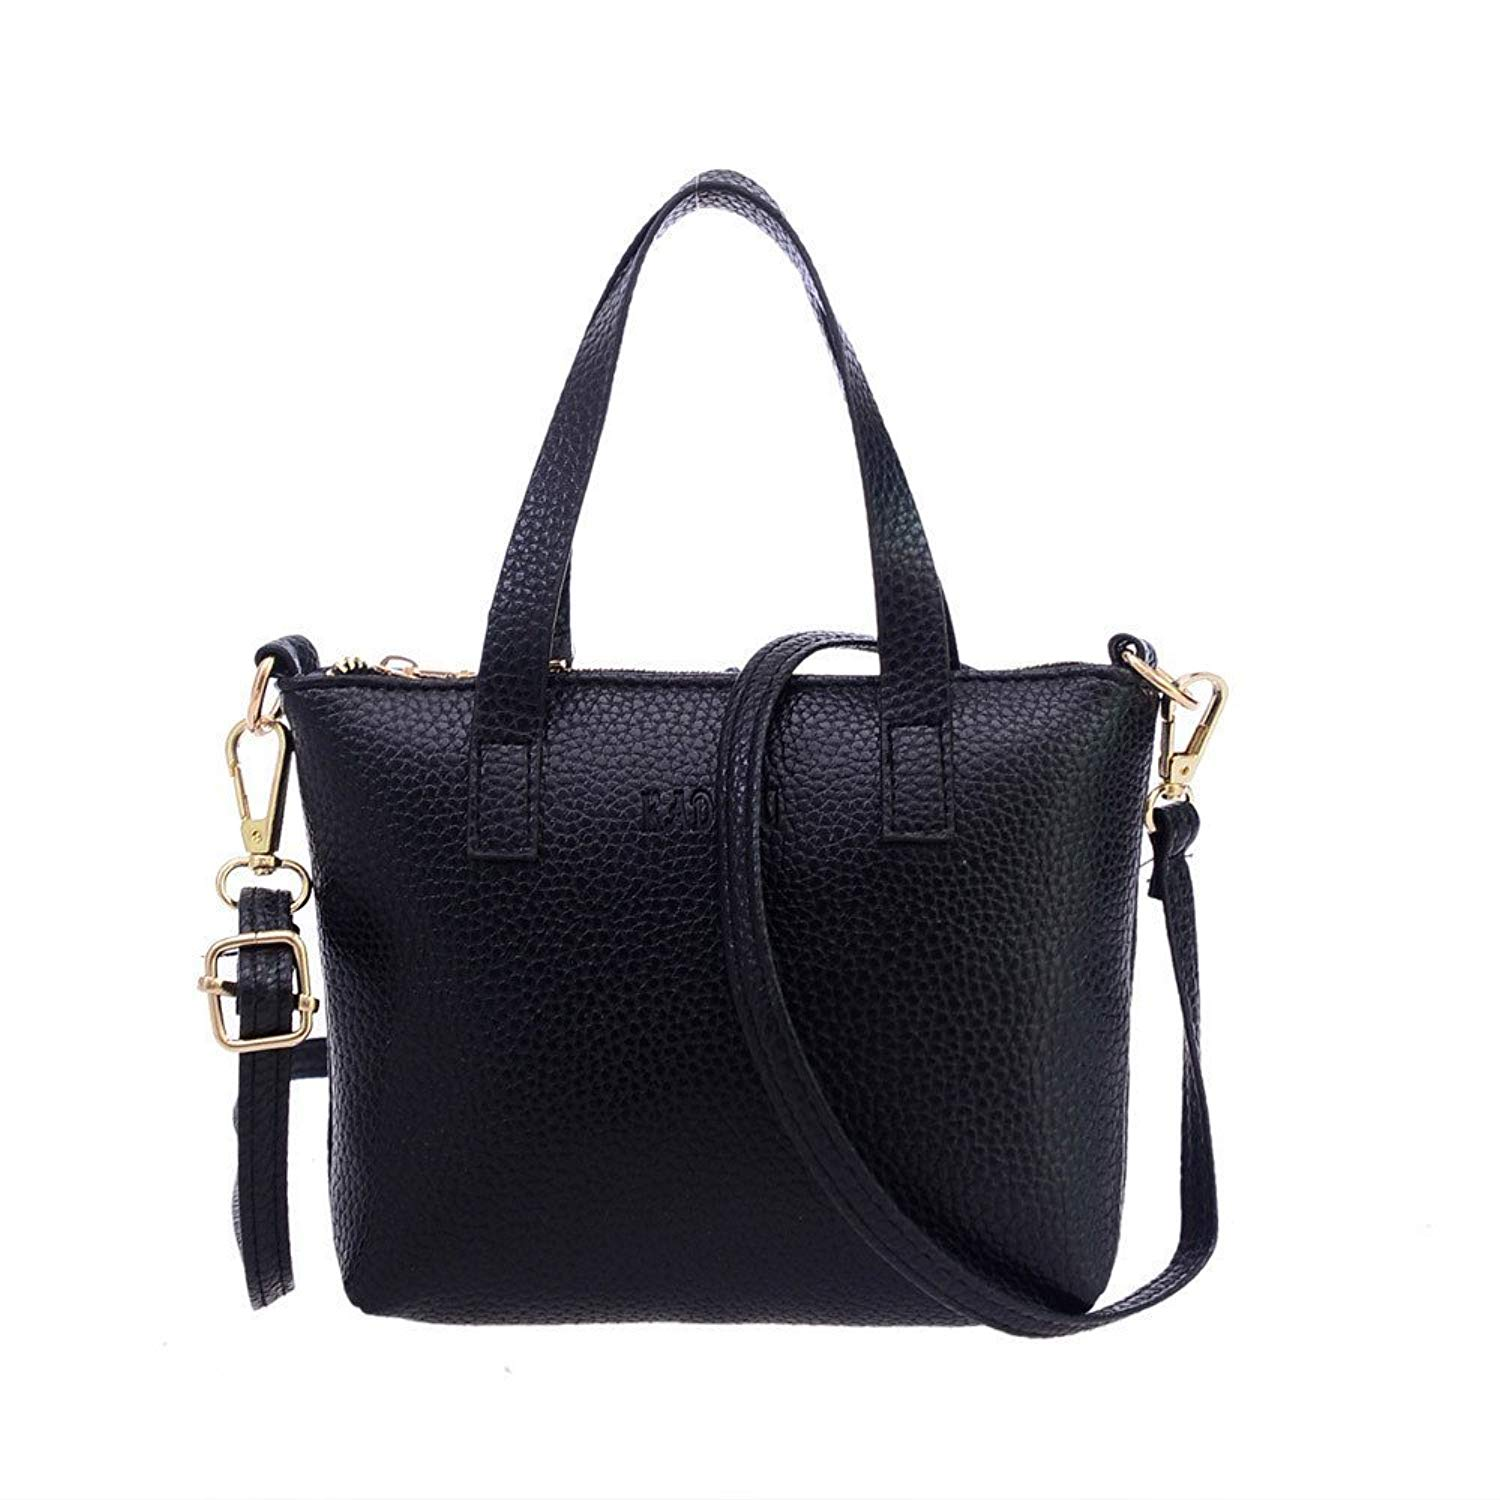 Liraly Women Bags,Clearance Sale! 2018 Women Fashion Solid Color Handbag Shoulder Bag Tote Ladies Purse